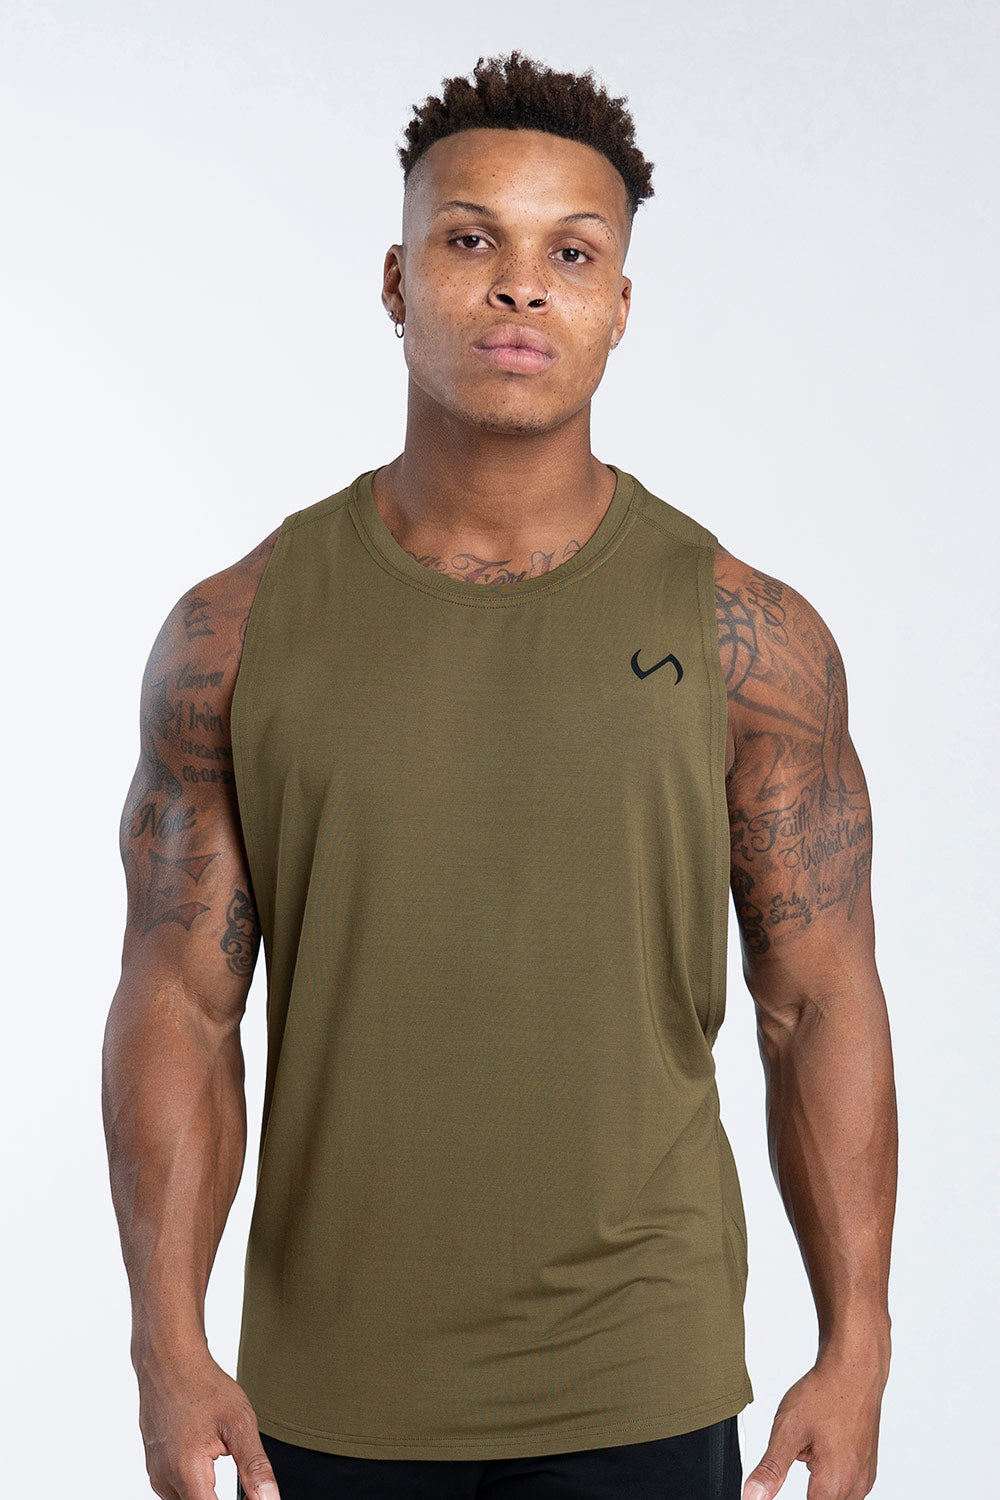 TLF Nova Tank - Tanks & Sleeveless - TLF Apparel | Take Life Further